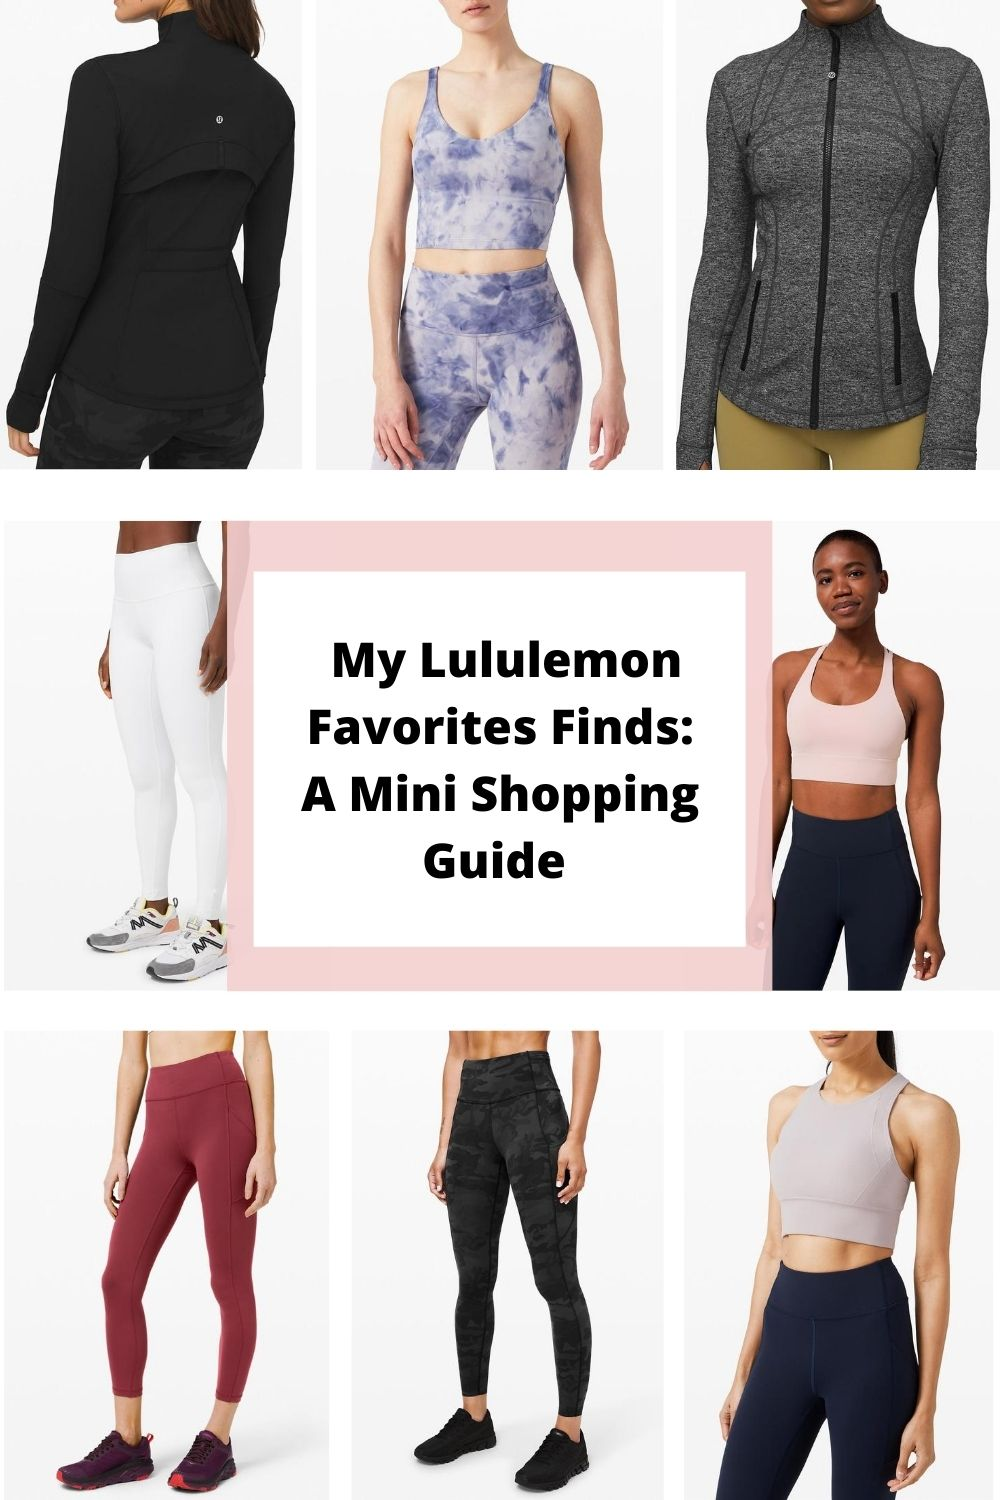 Lululemon shopping guide